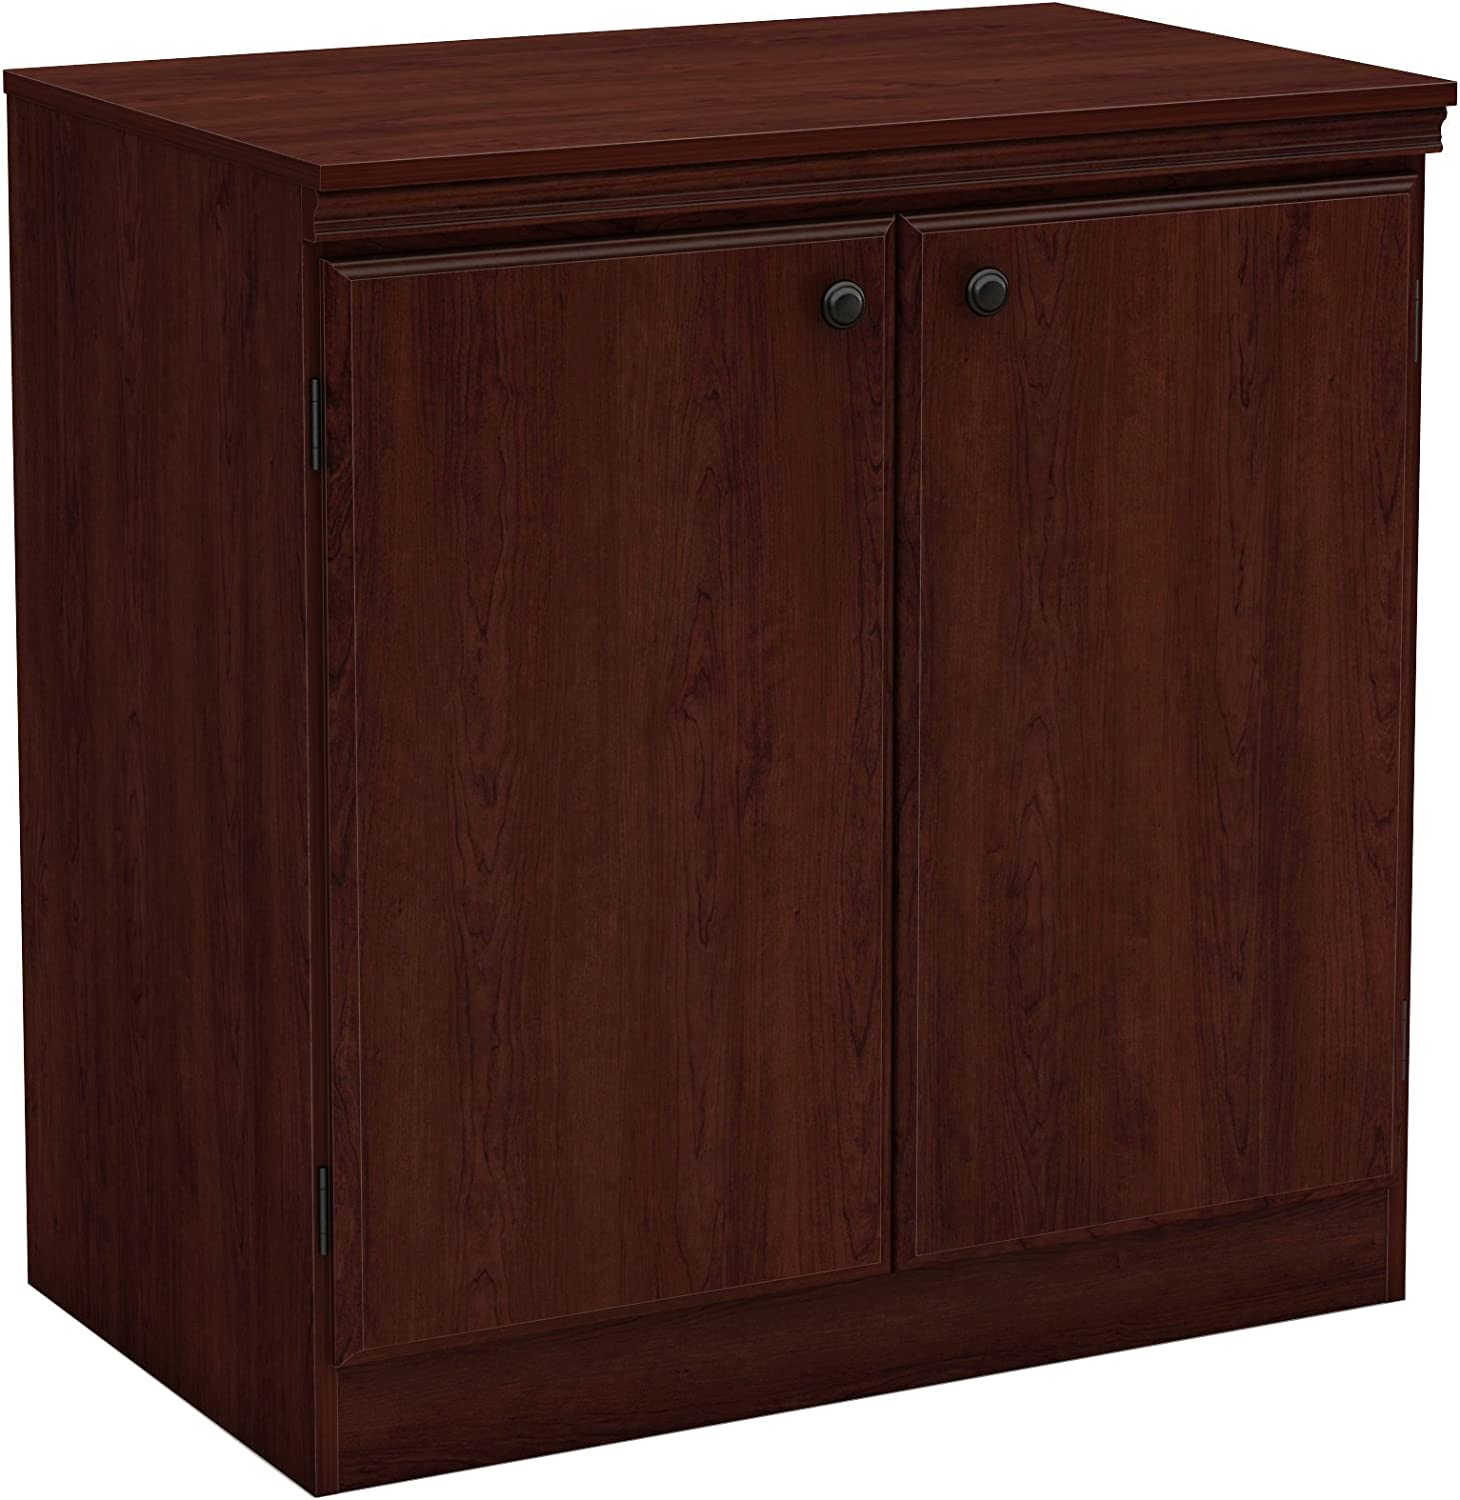 South Shore Furniture 7246722 Morgan Small 2-Door Storage Cabinet, Royal Cherry